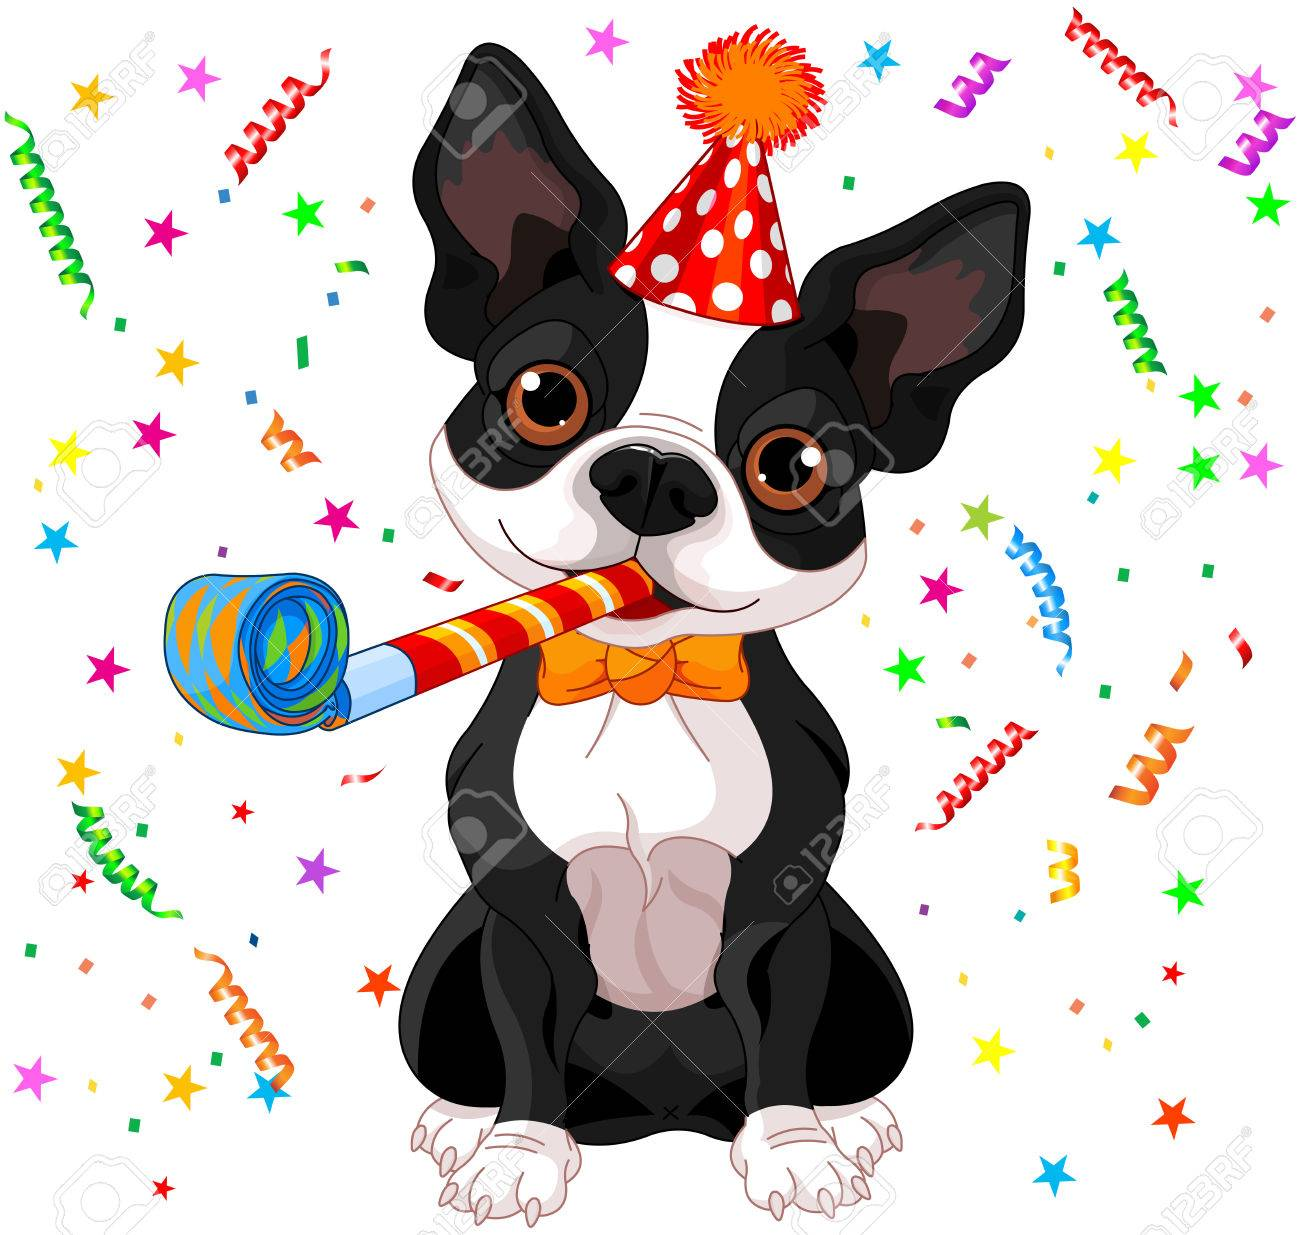 Le collier étrangleur: avis? - Page 12 35588778-illustration-of-cute-boston-terrier-celebrating